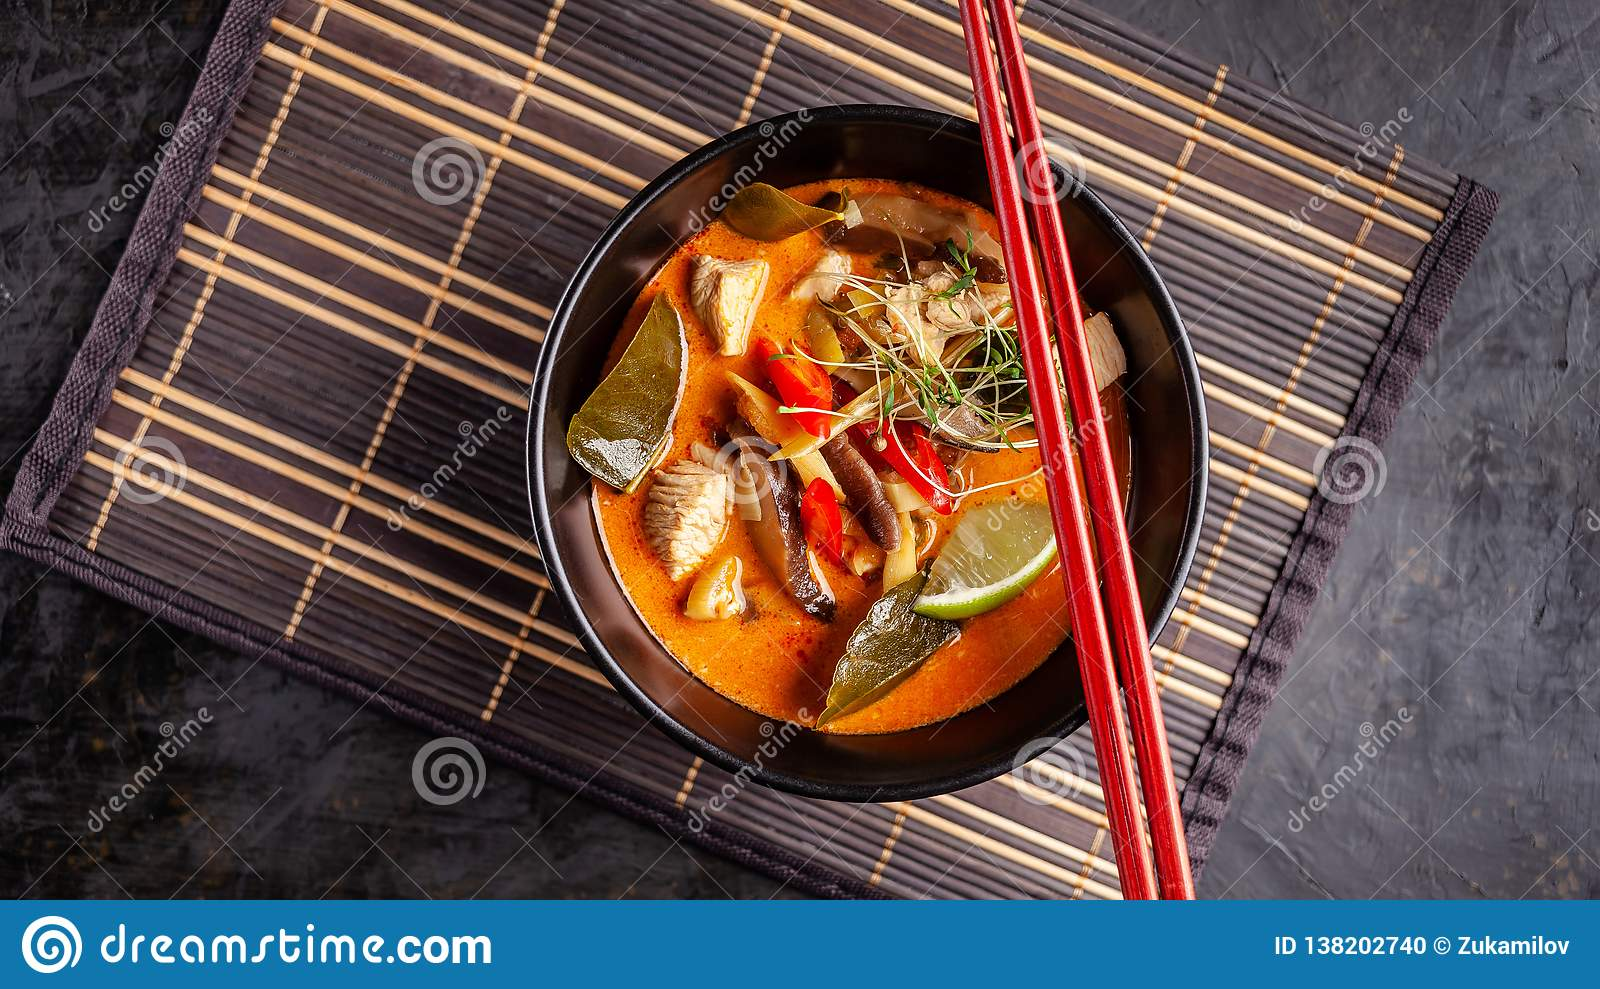 Cuisine Yam Concept Of Asian Cuisine Thai Soup Tom Yam Of Chicken Broth And